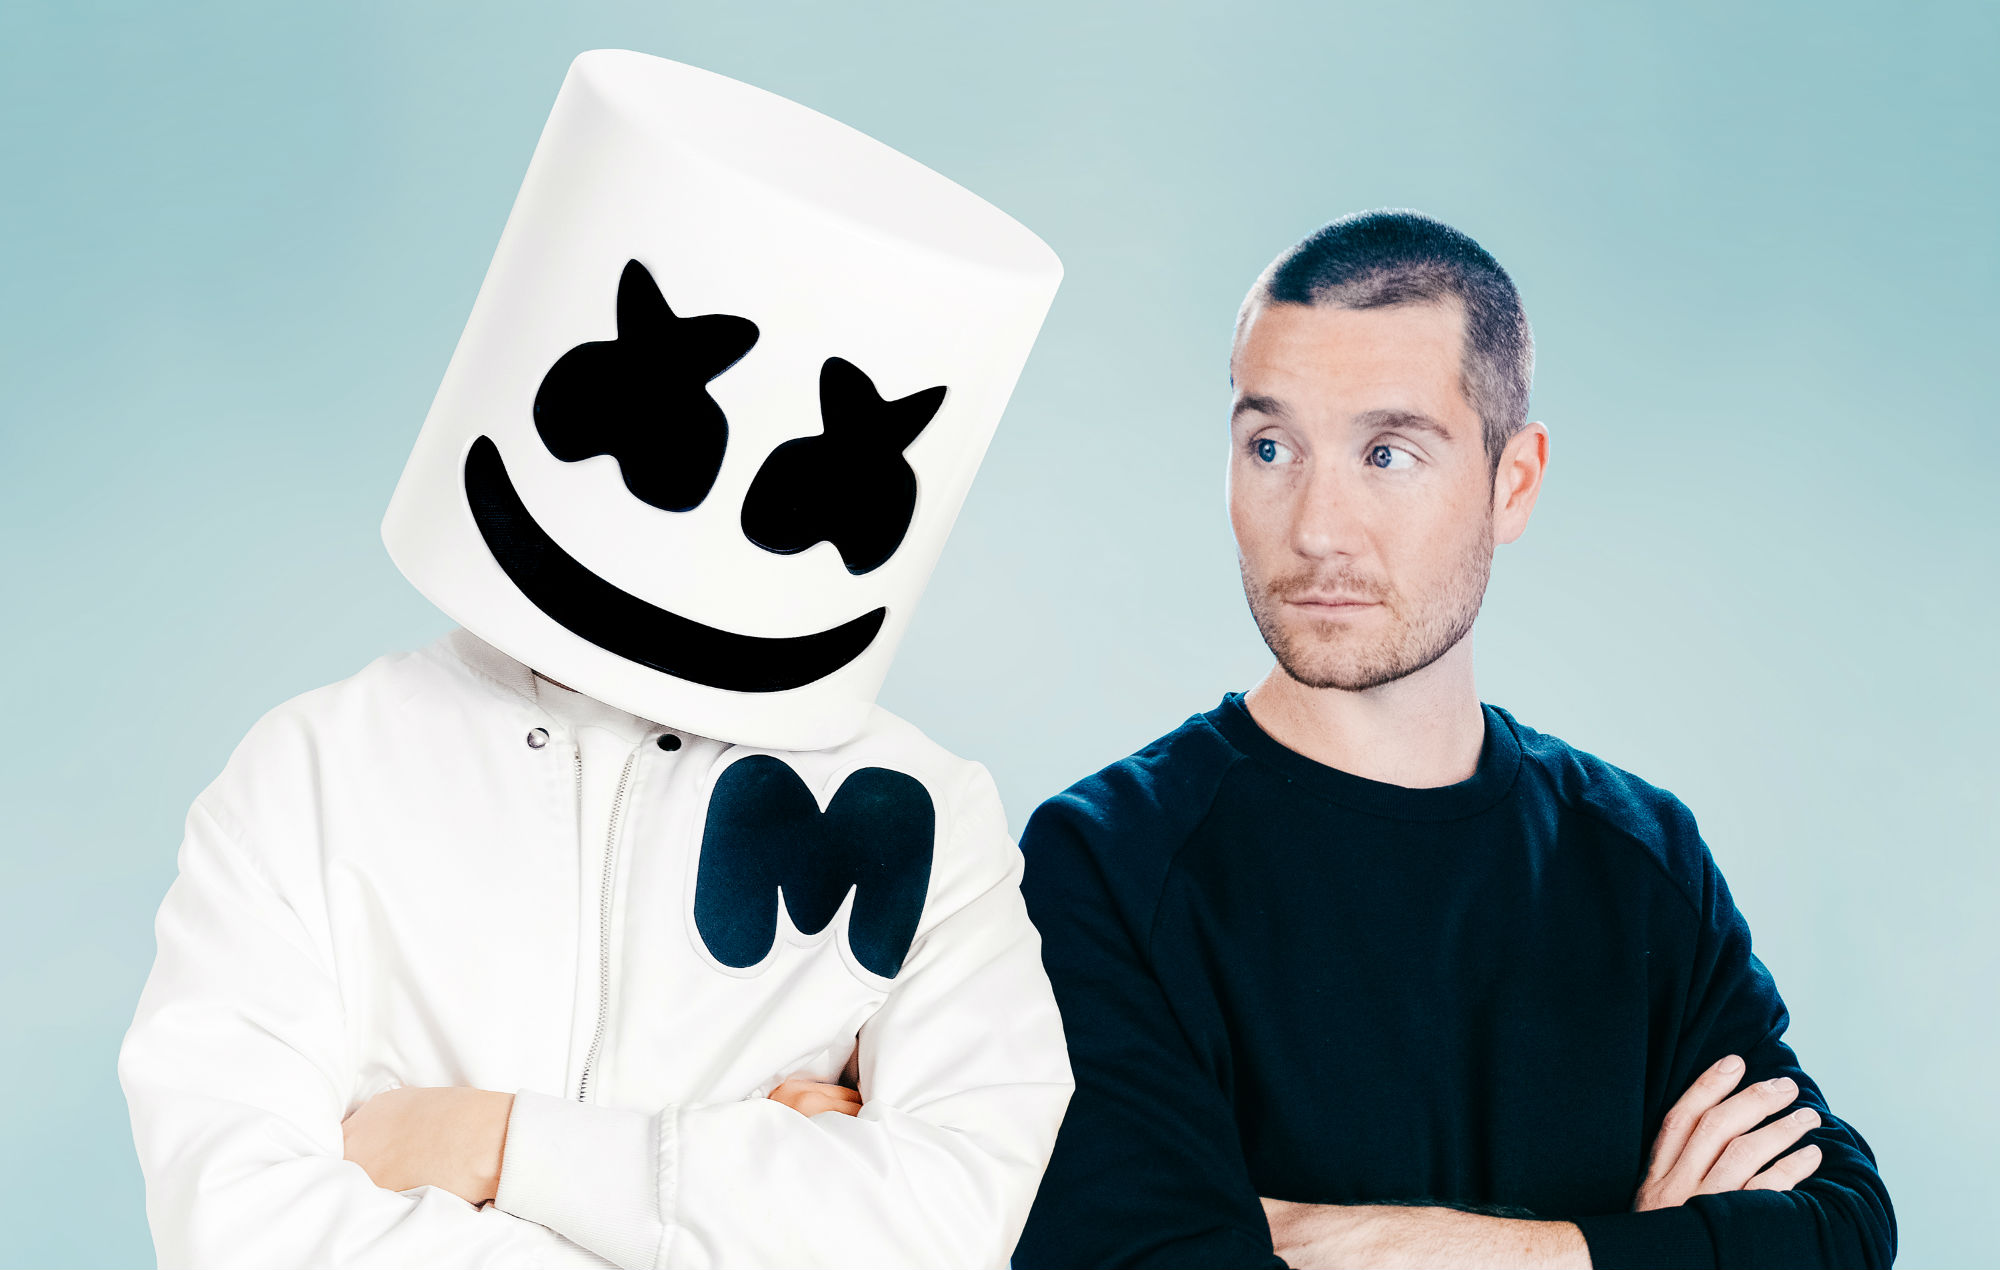 'Euphoria meets melancholy' - Bastille and Marshmello team up for new song 'Happier' - NME